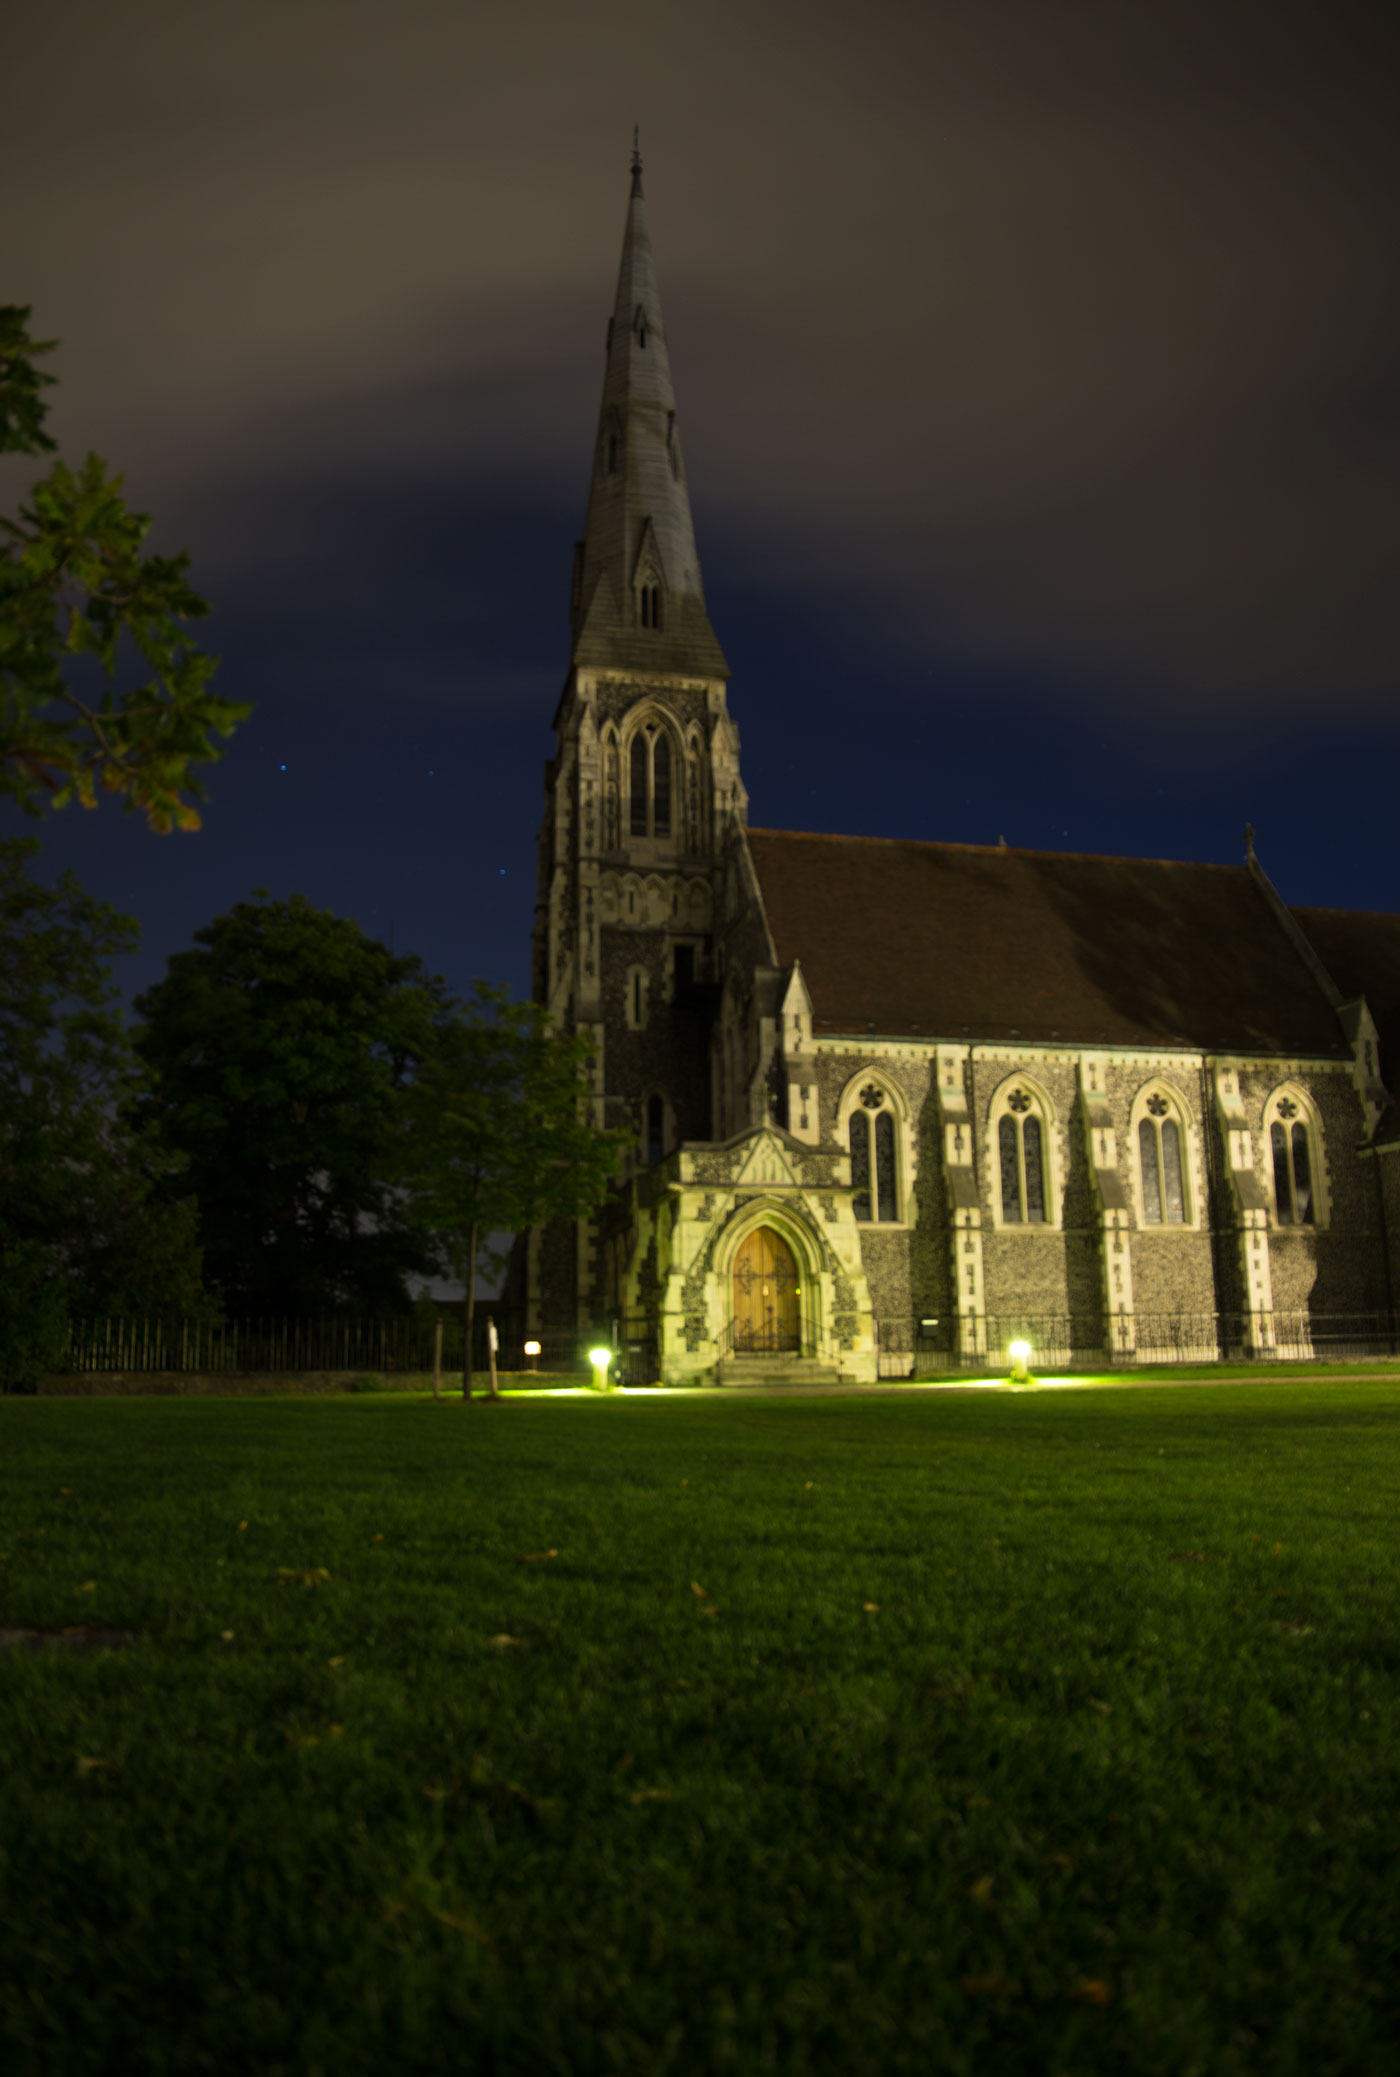 Night Photography of the impressive St. Alban's Church